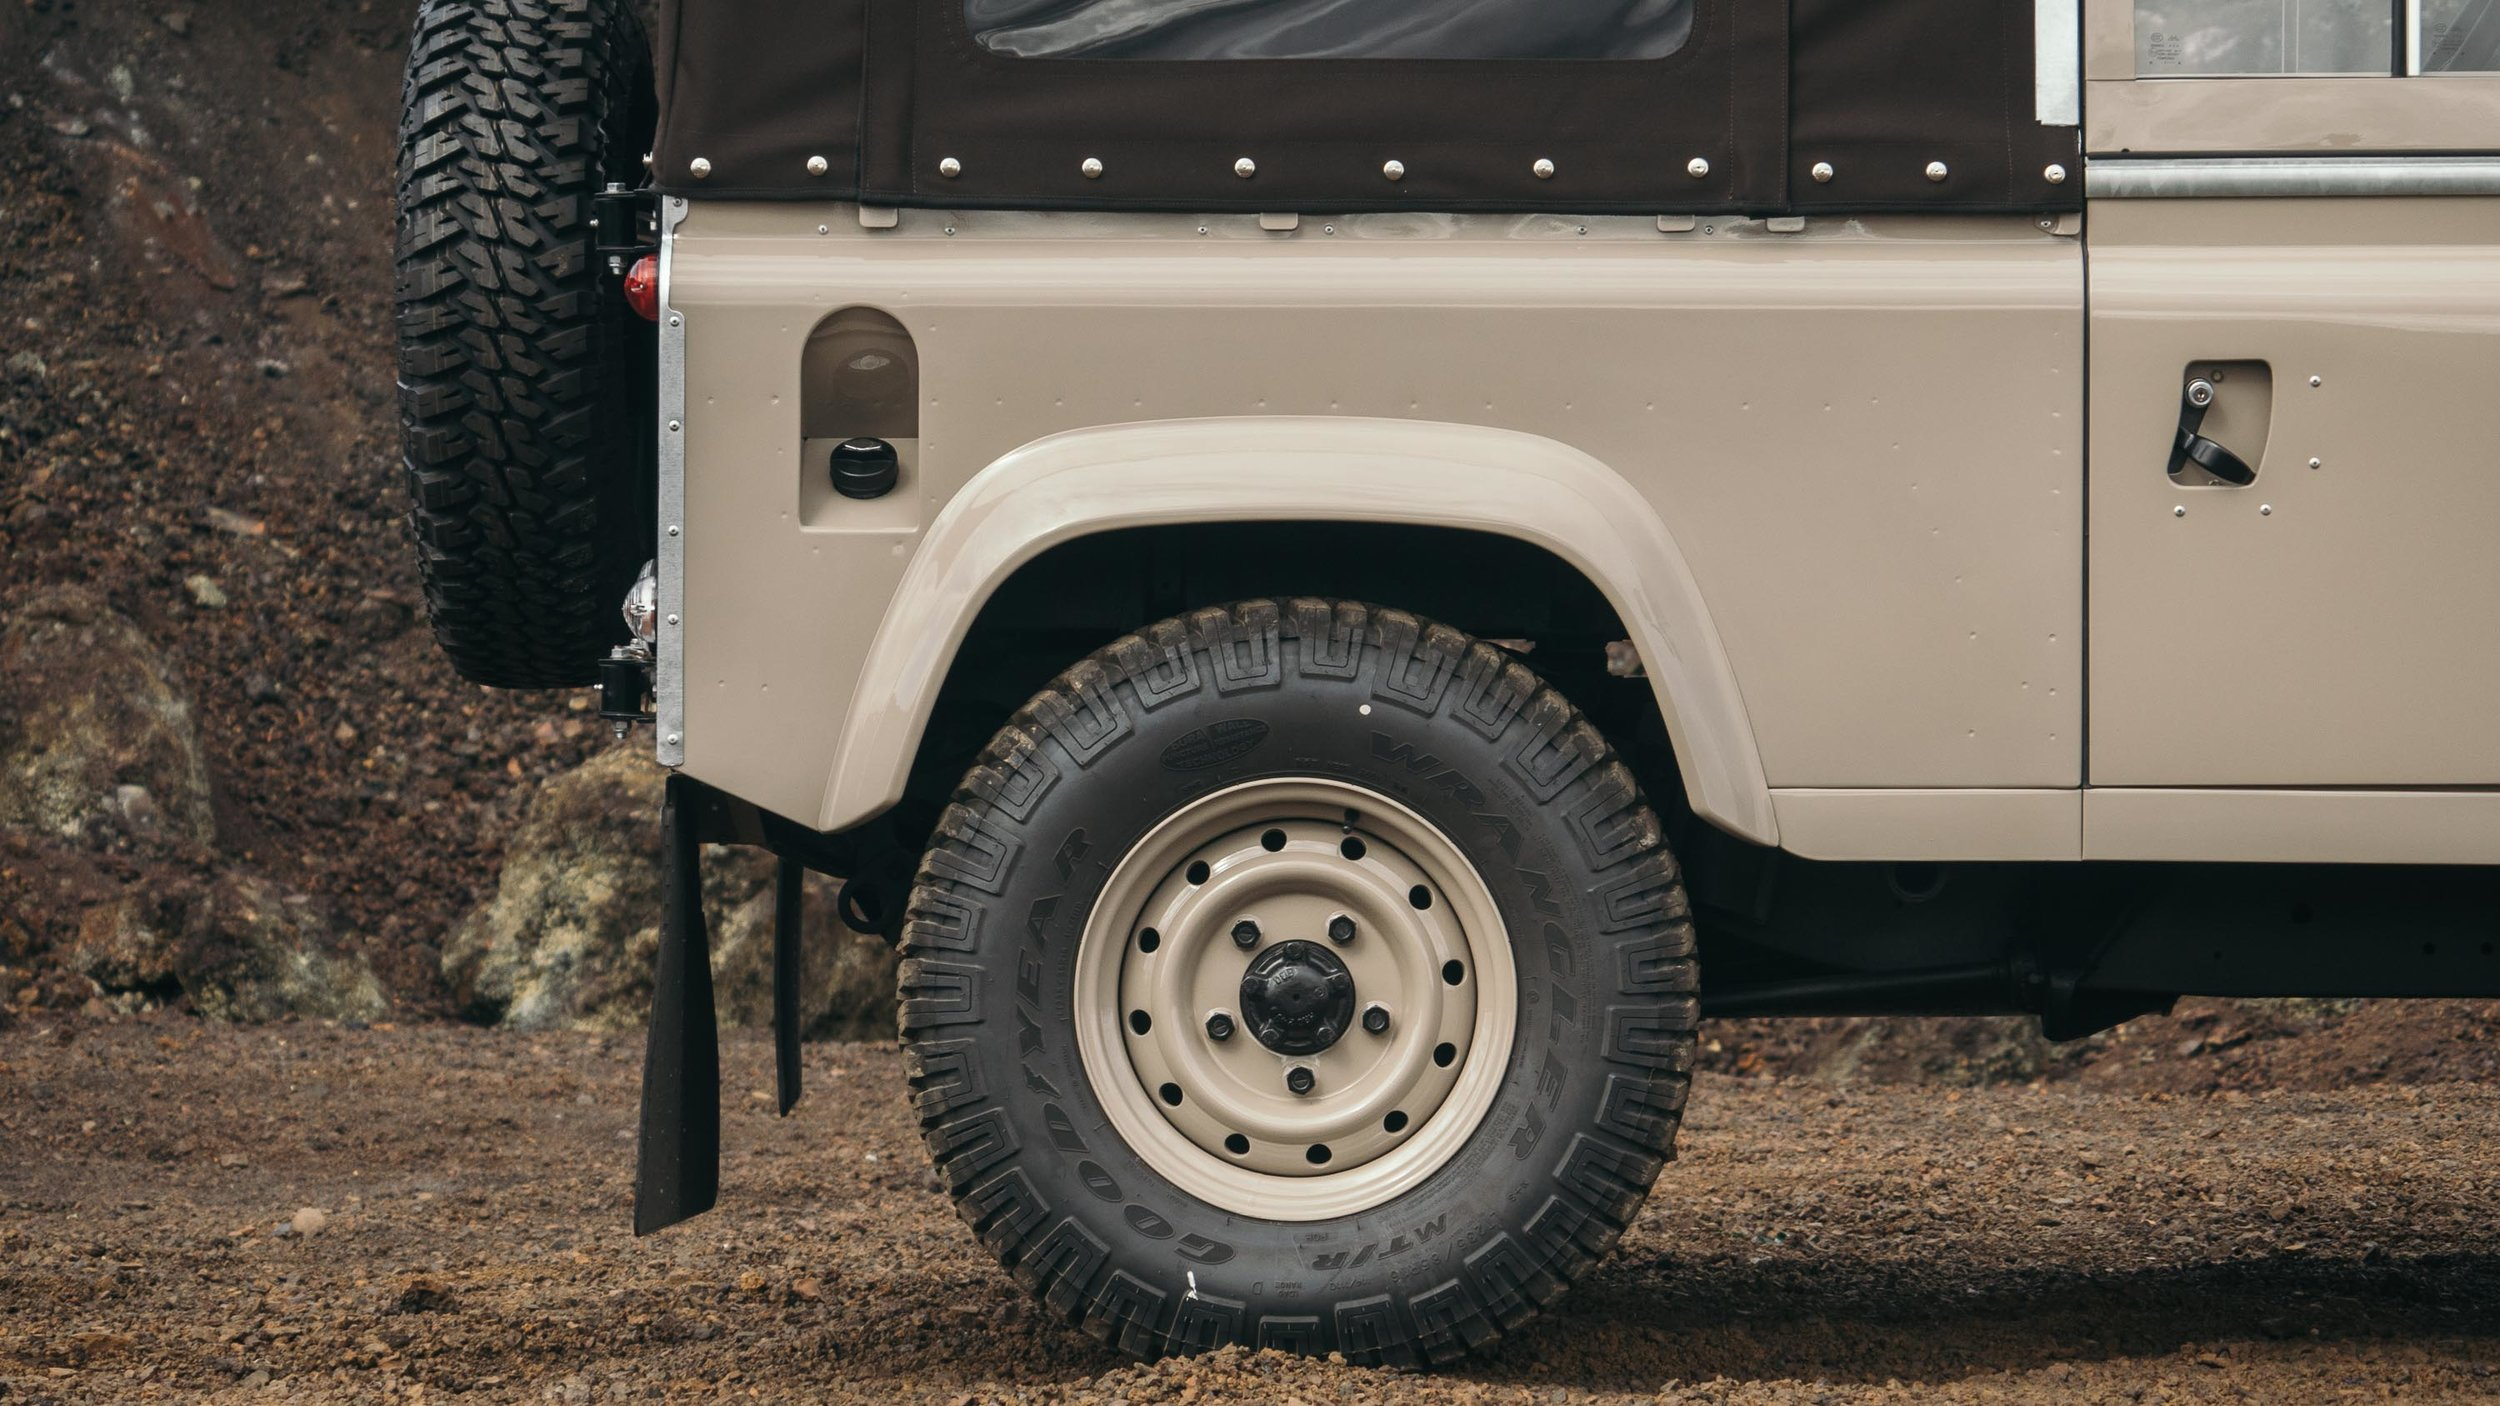 coolnvintage Land Rover Defender (69 of 81).jpg